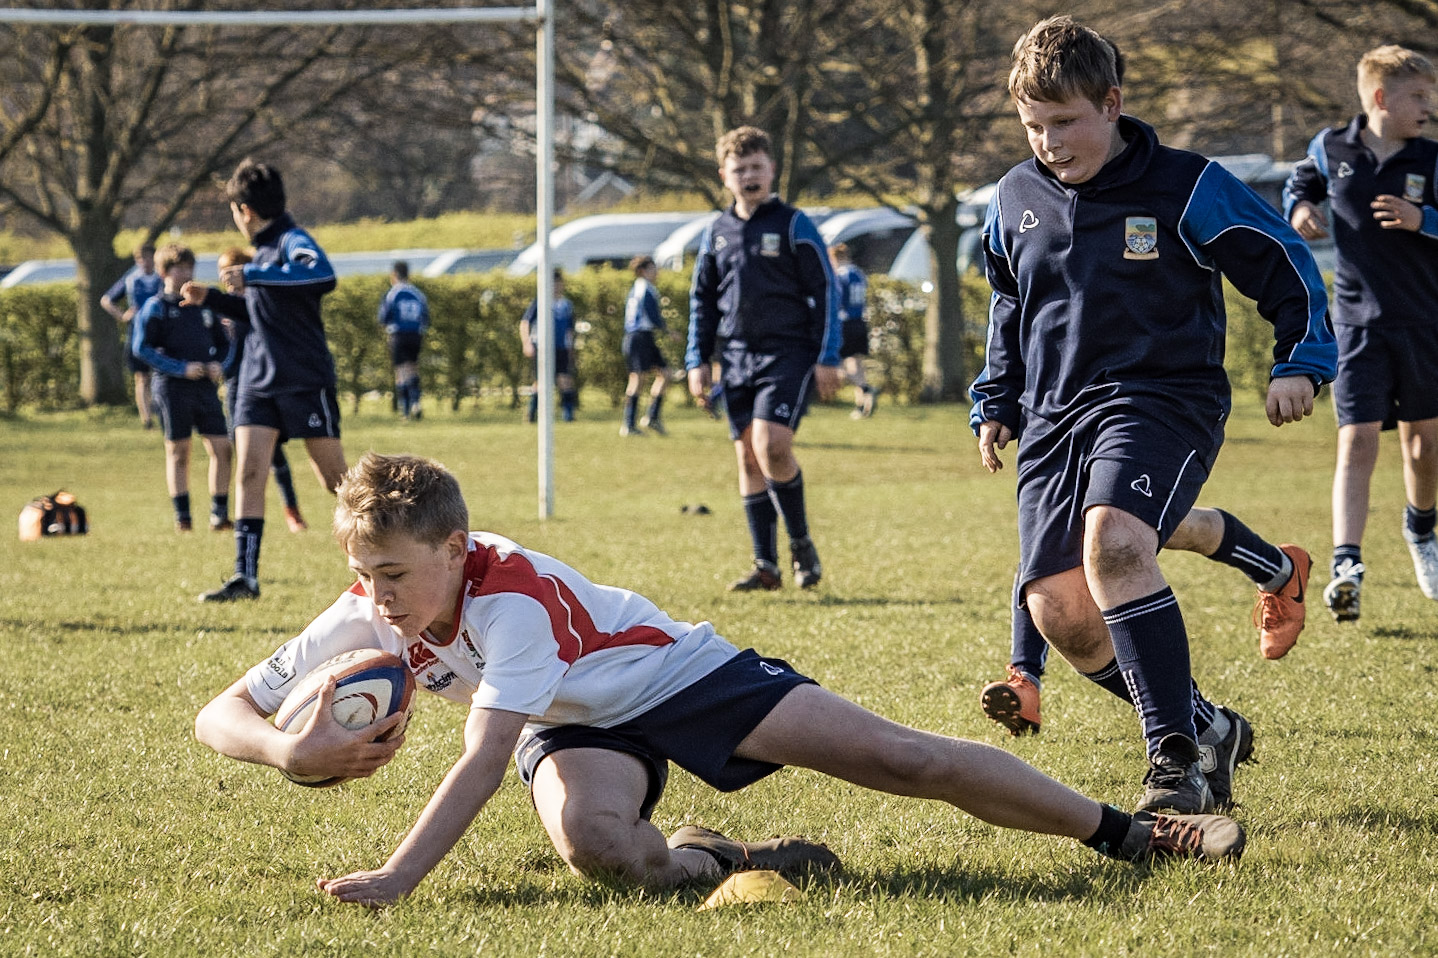 Boy's Day Of Rugby 2019